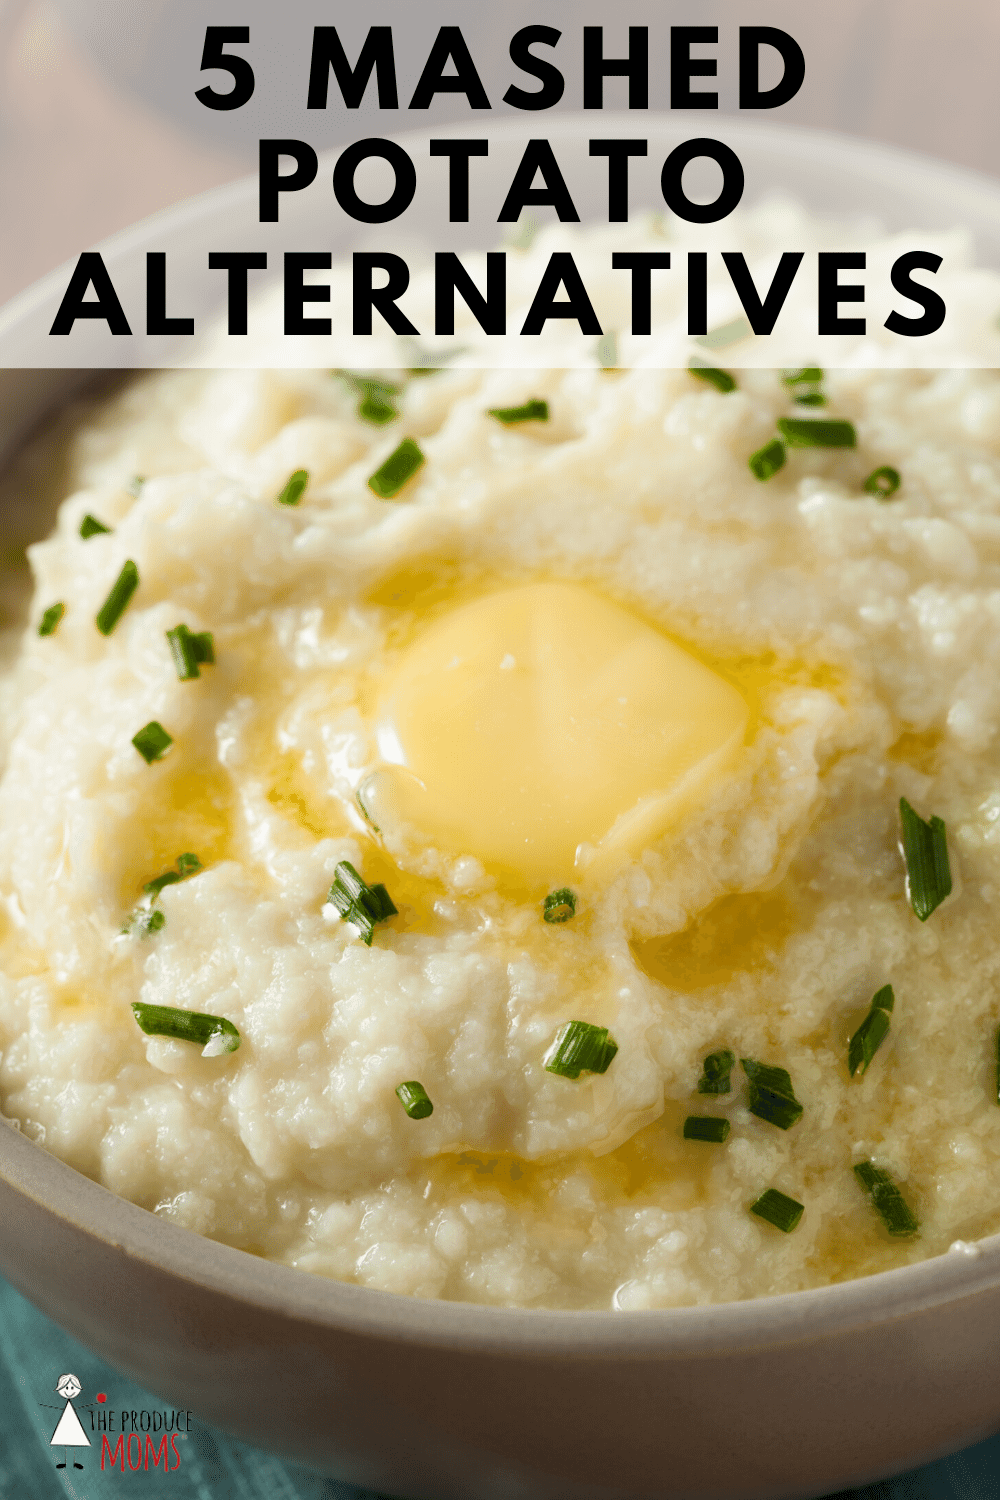 Mashed Potato Alternatives | Other Veggies You Can Mash